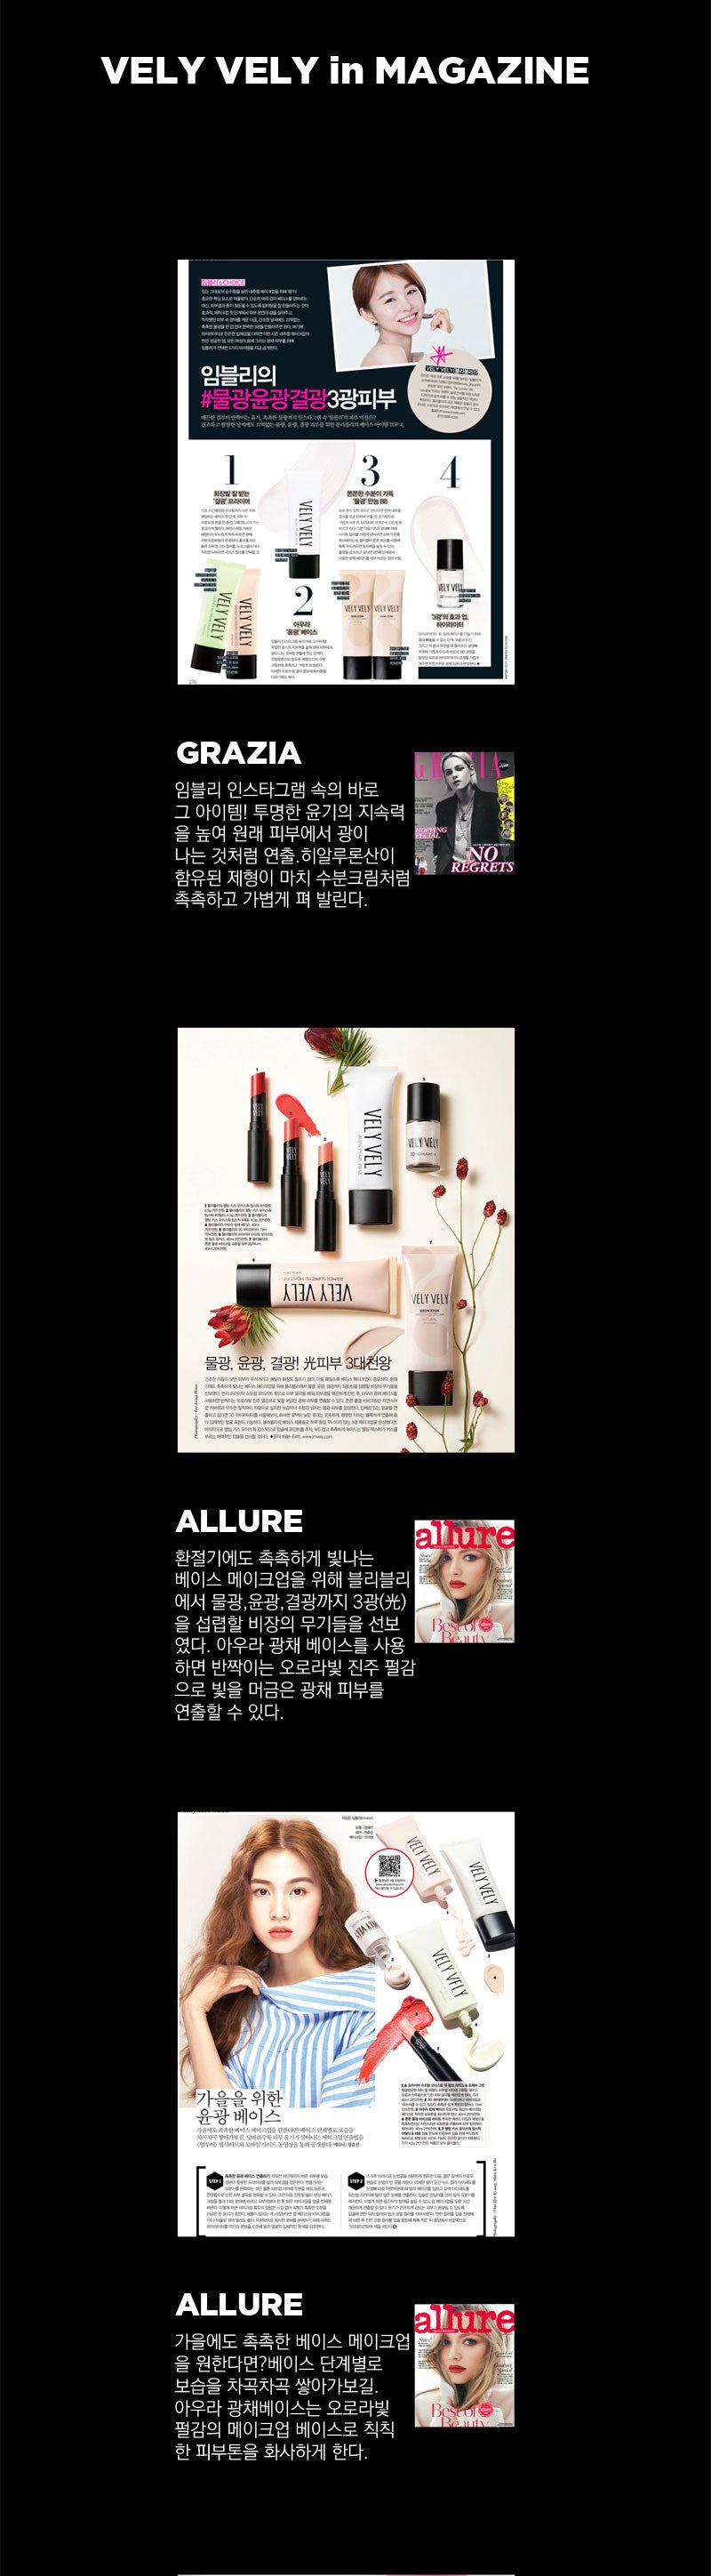 Vely Vely's Aura Pearl Base Primer is featured in multiple magazines!